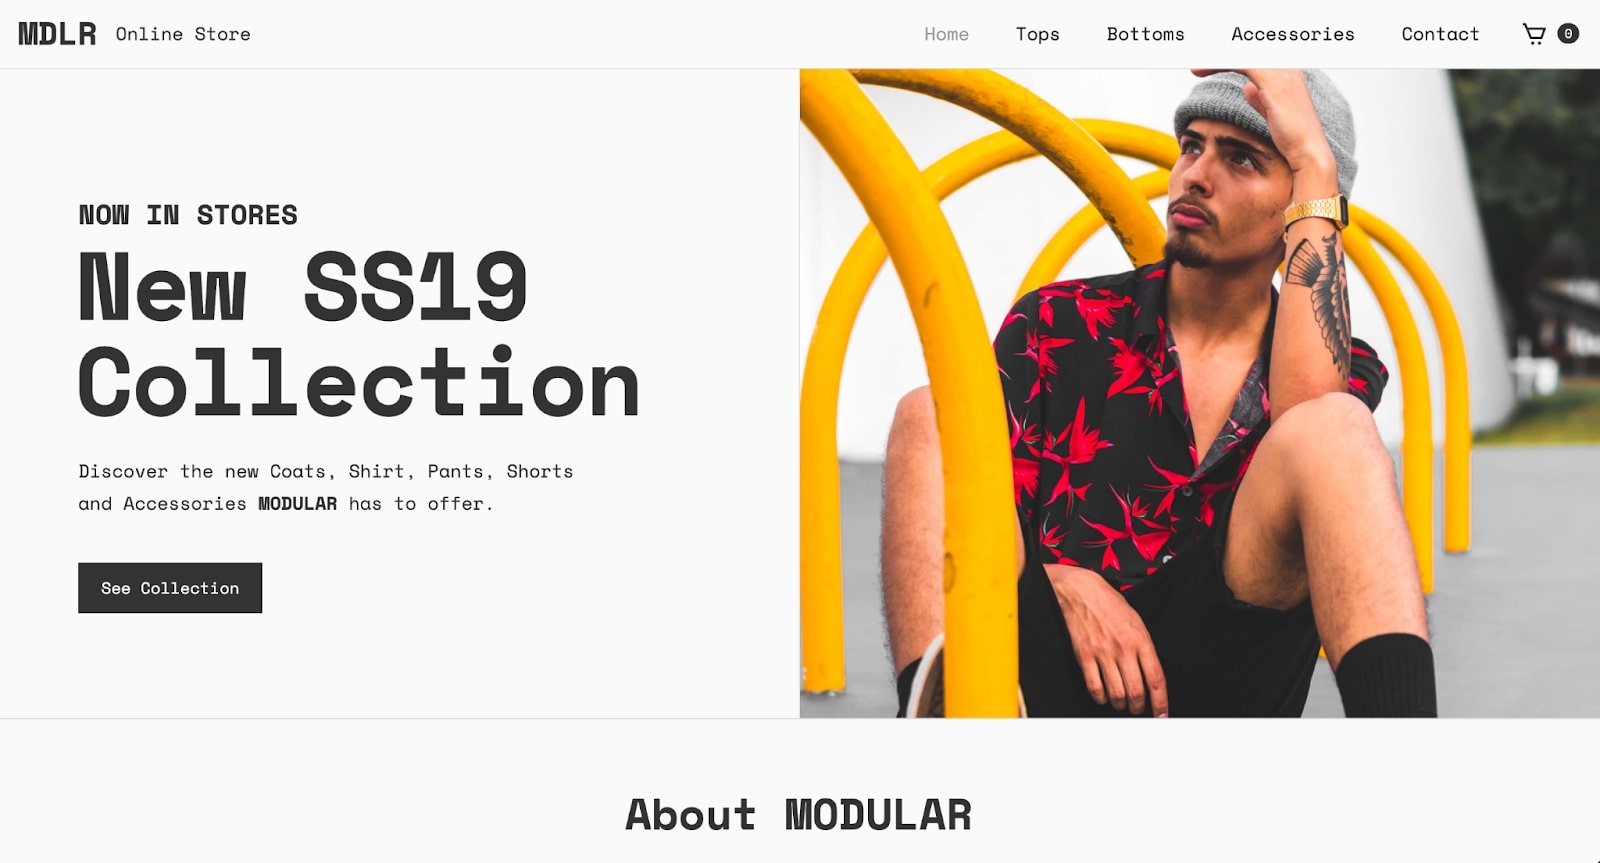 An image of MDLR's online store.